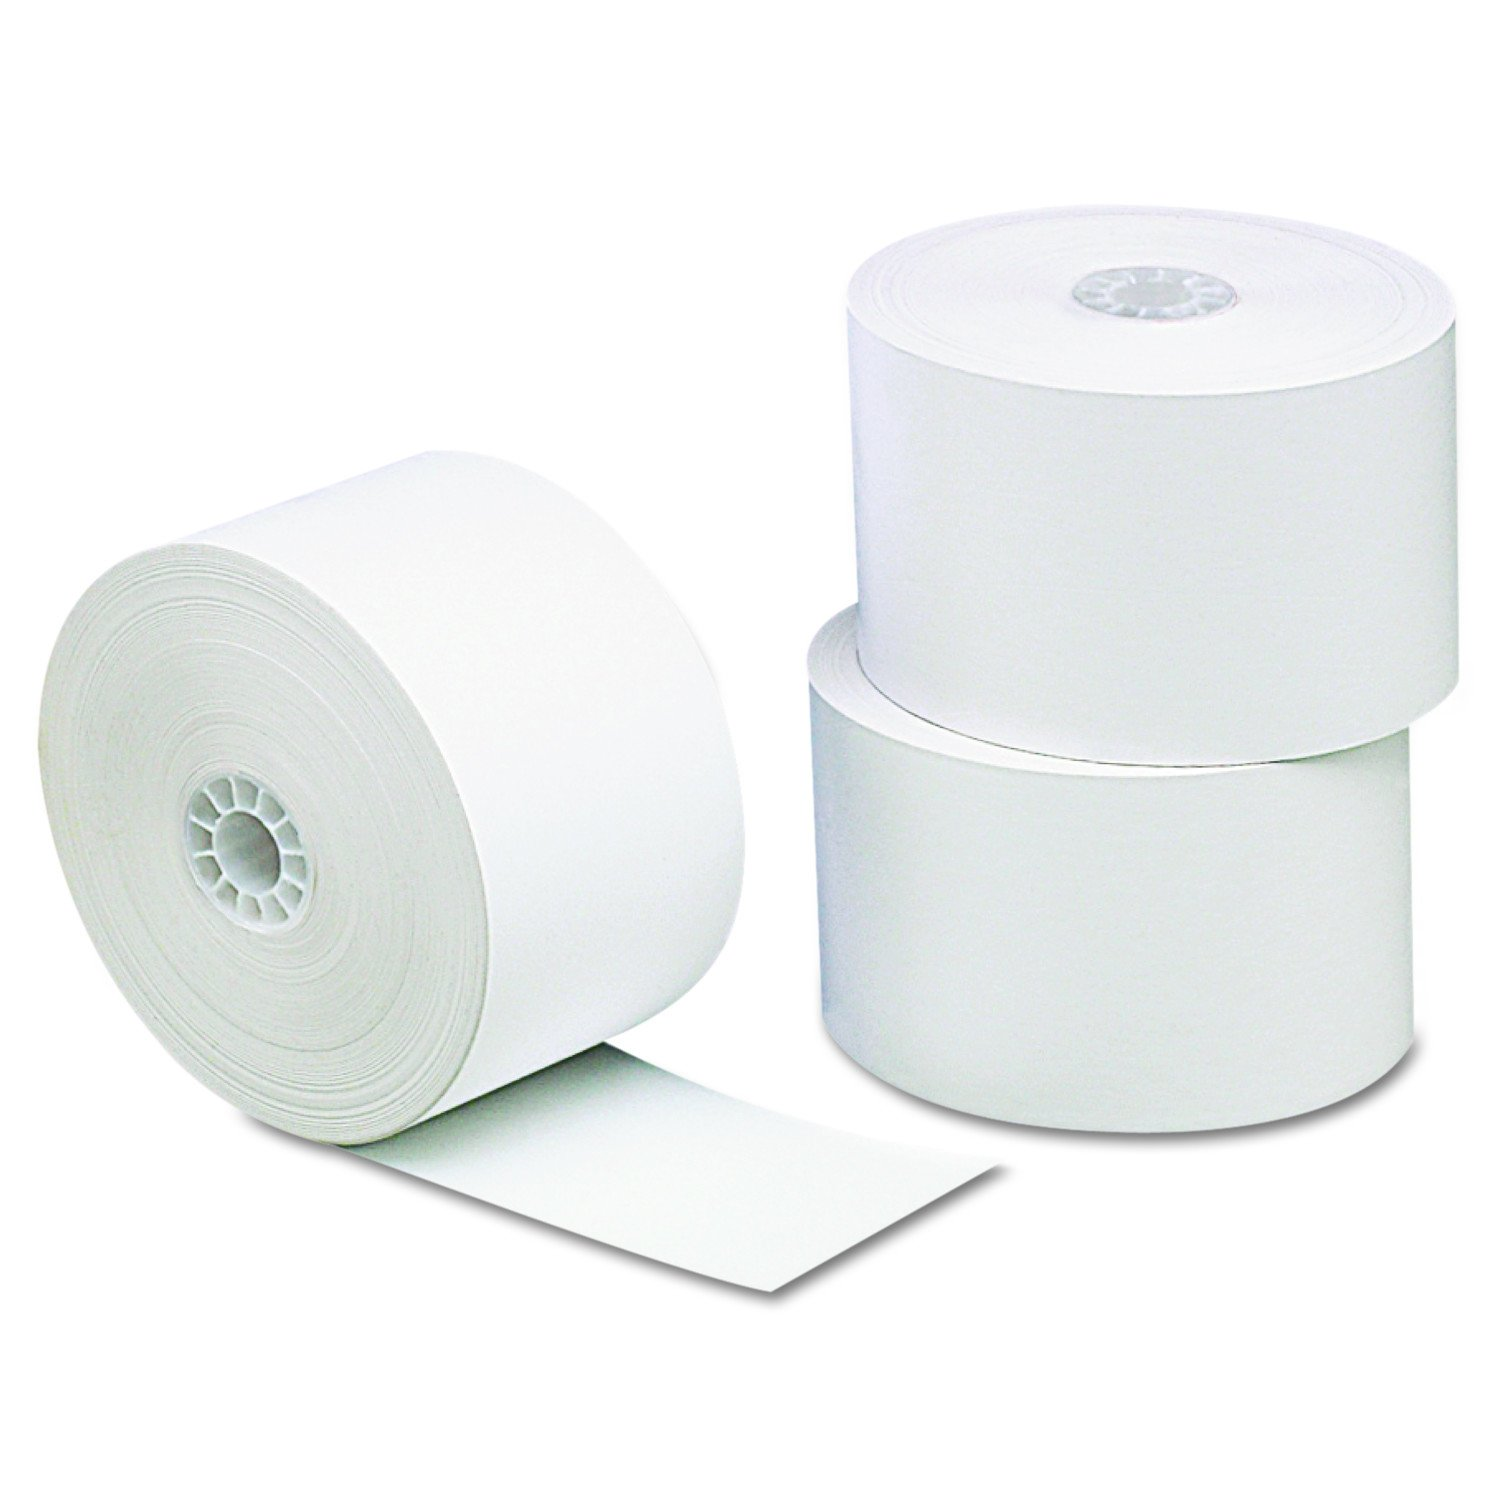 Universal 35711 Single-Ply Thermal Paper Rolls, 1 3/4 x 230 ft, White (Pack of 10)